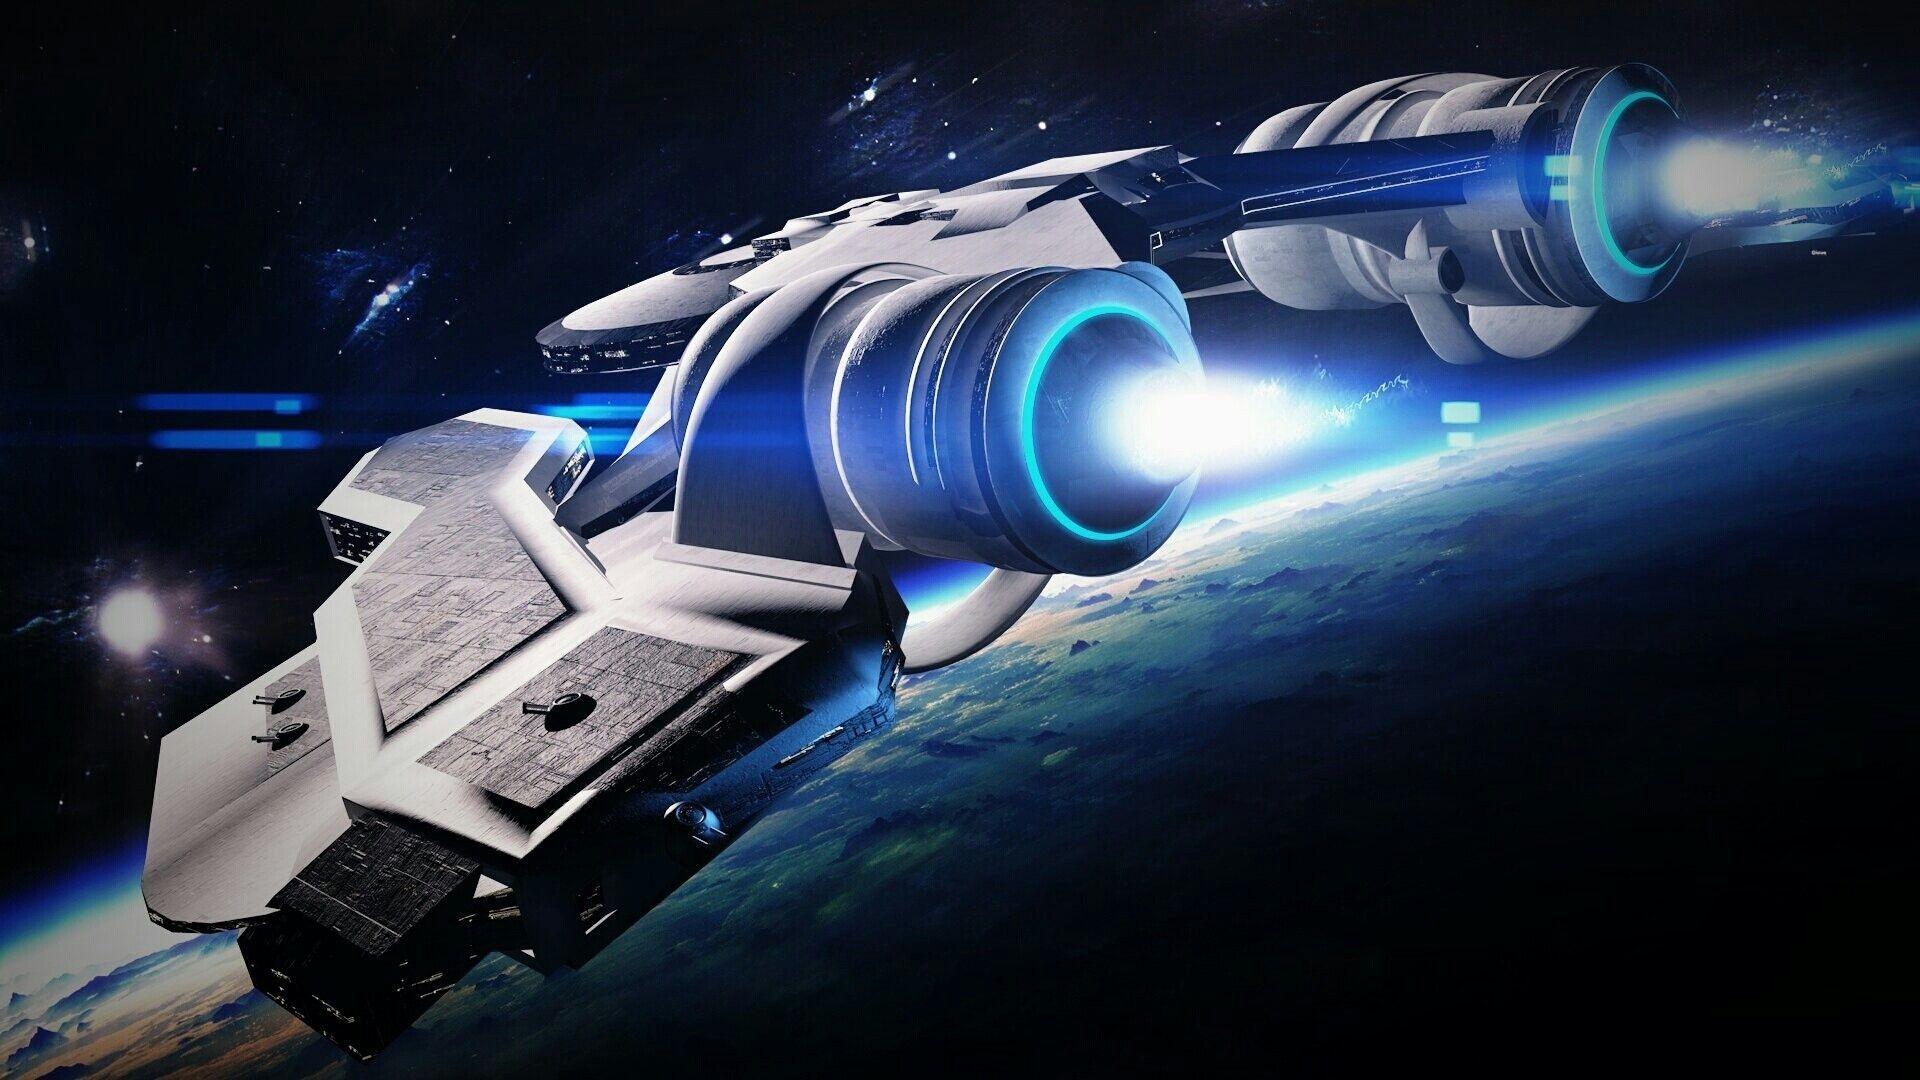 Spaceships Wallpaper 71+ images